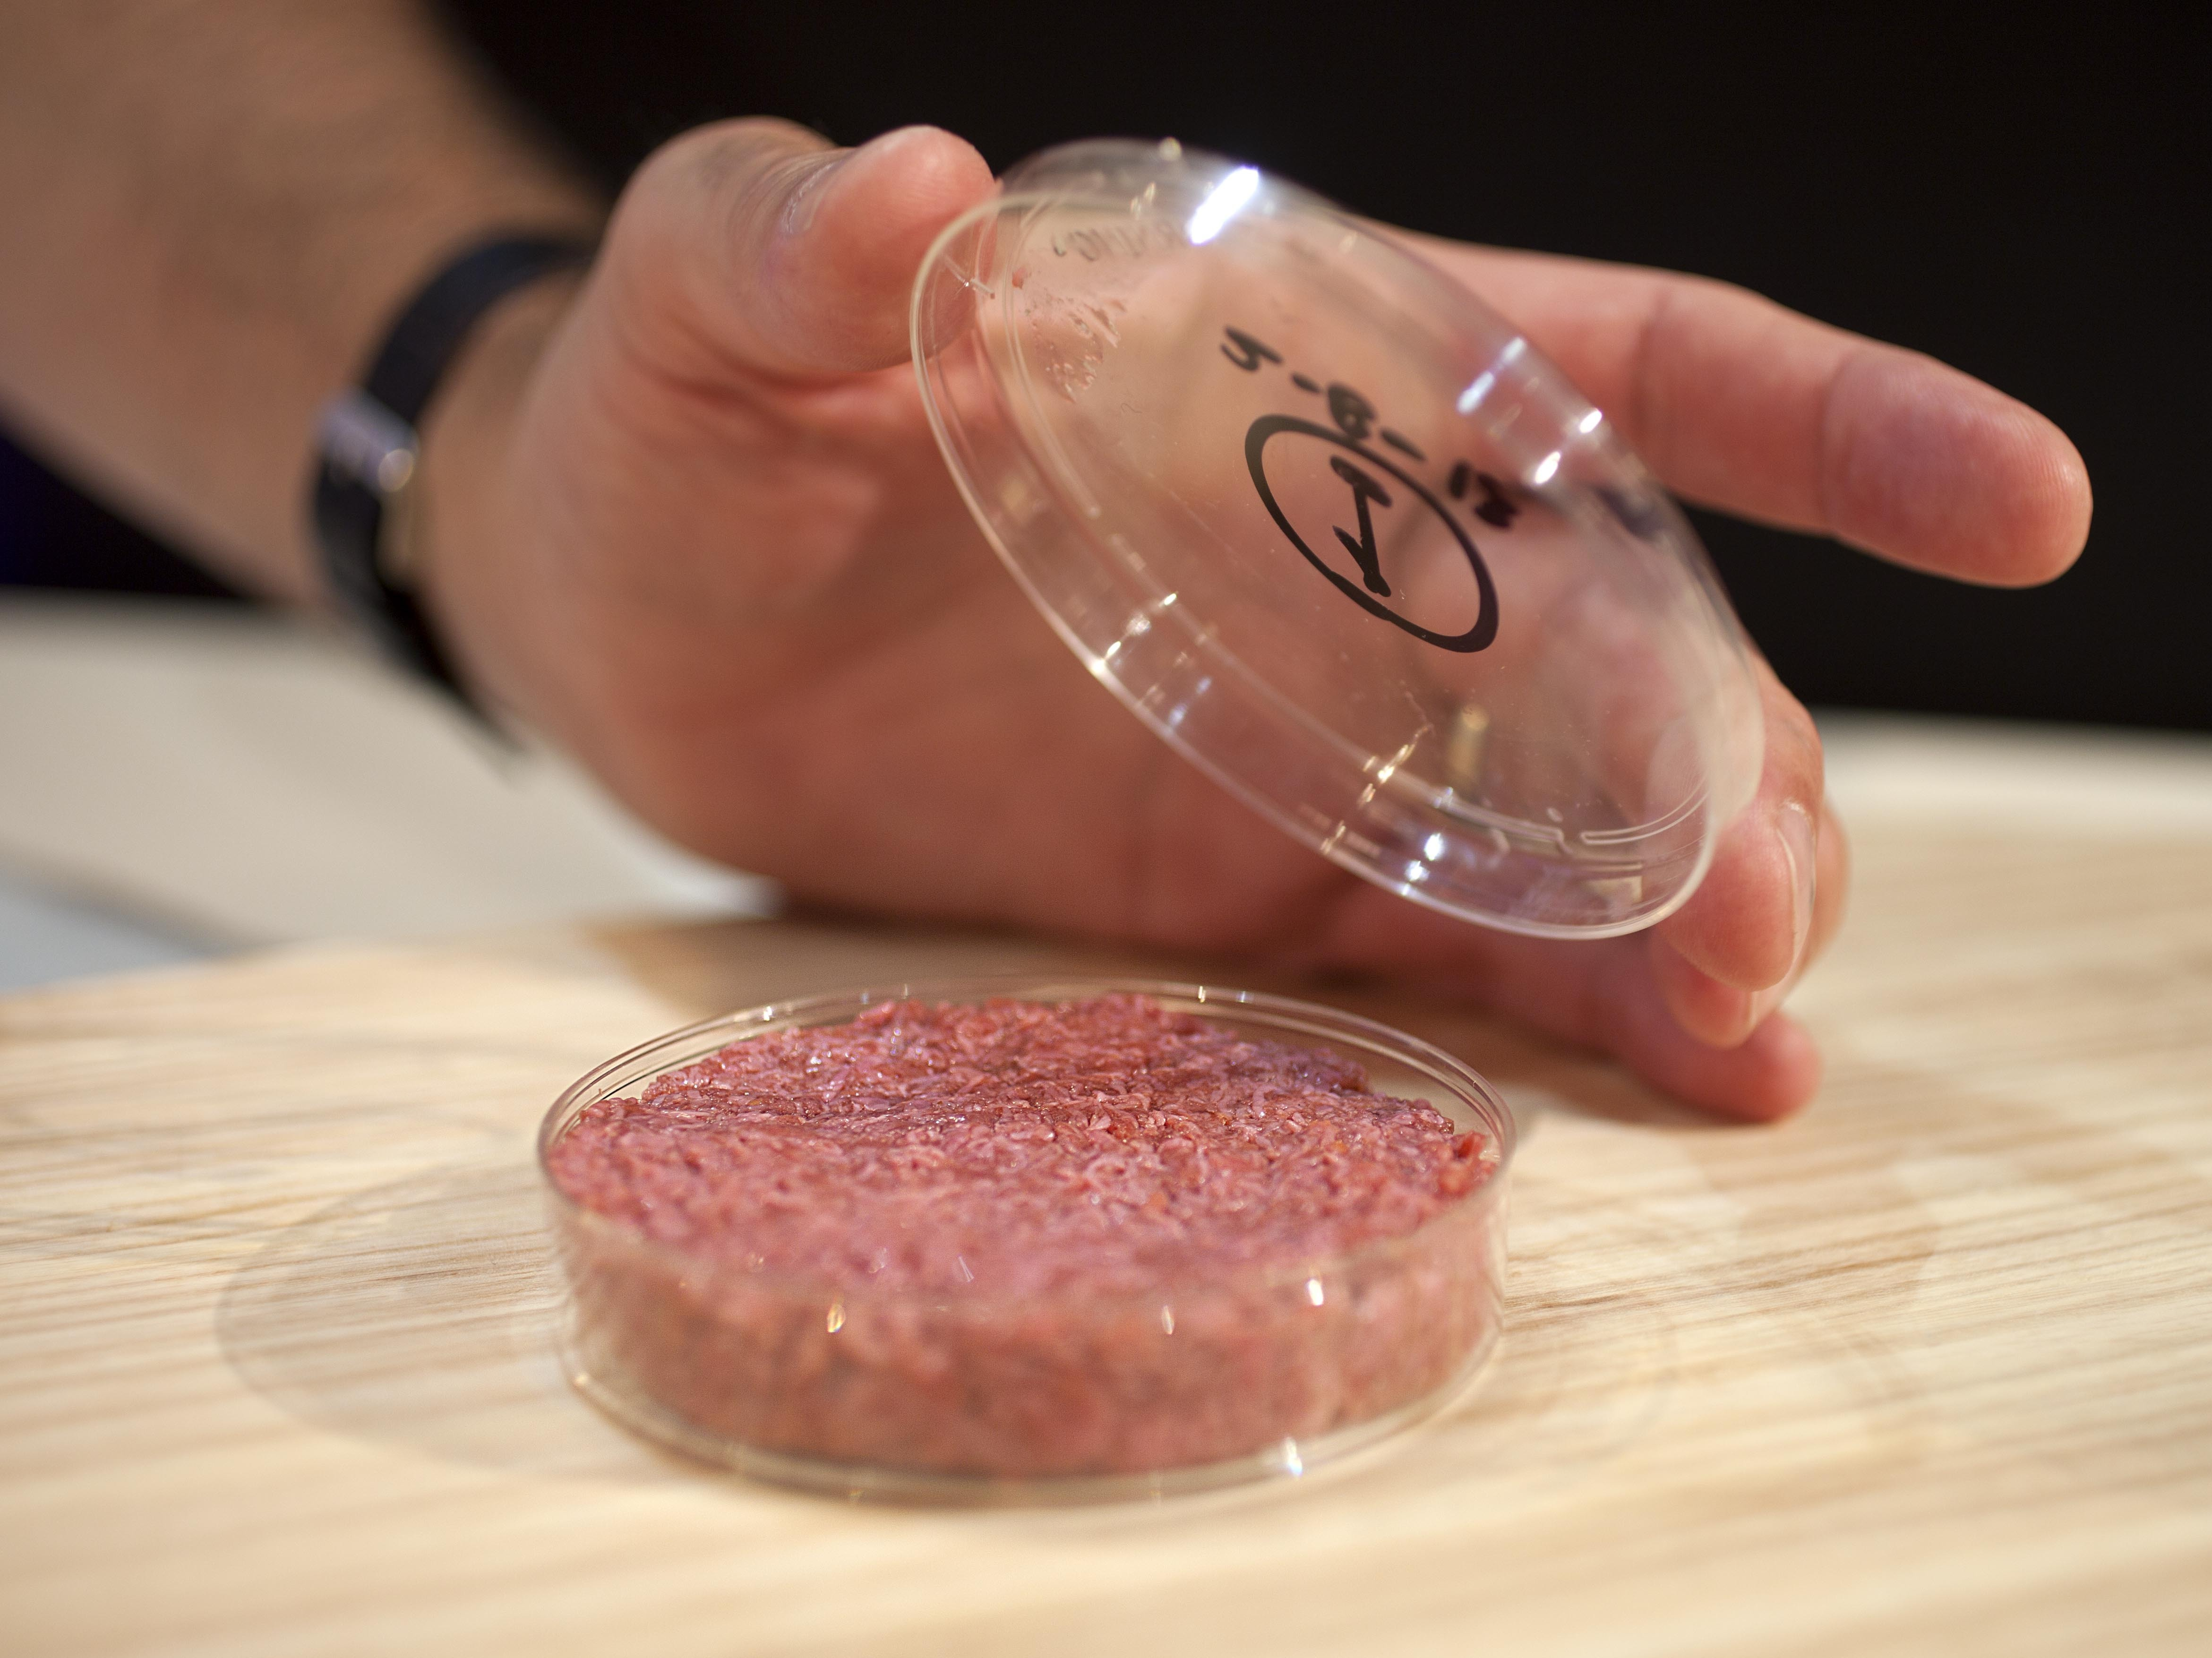 Heck No Or Let's Go? Your Thoughts On Lab-Grown Meat